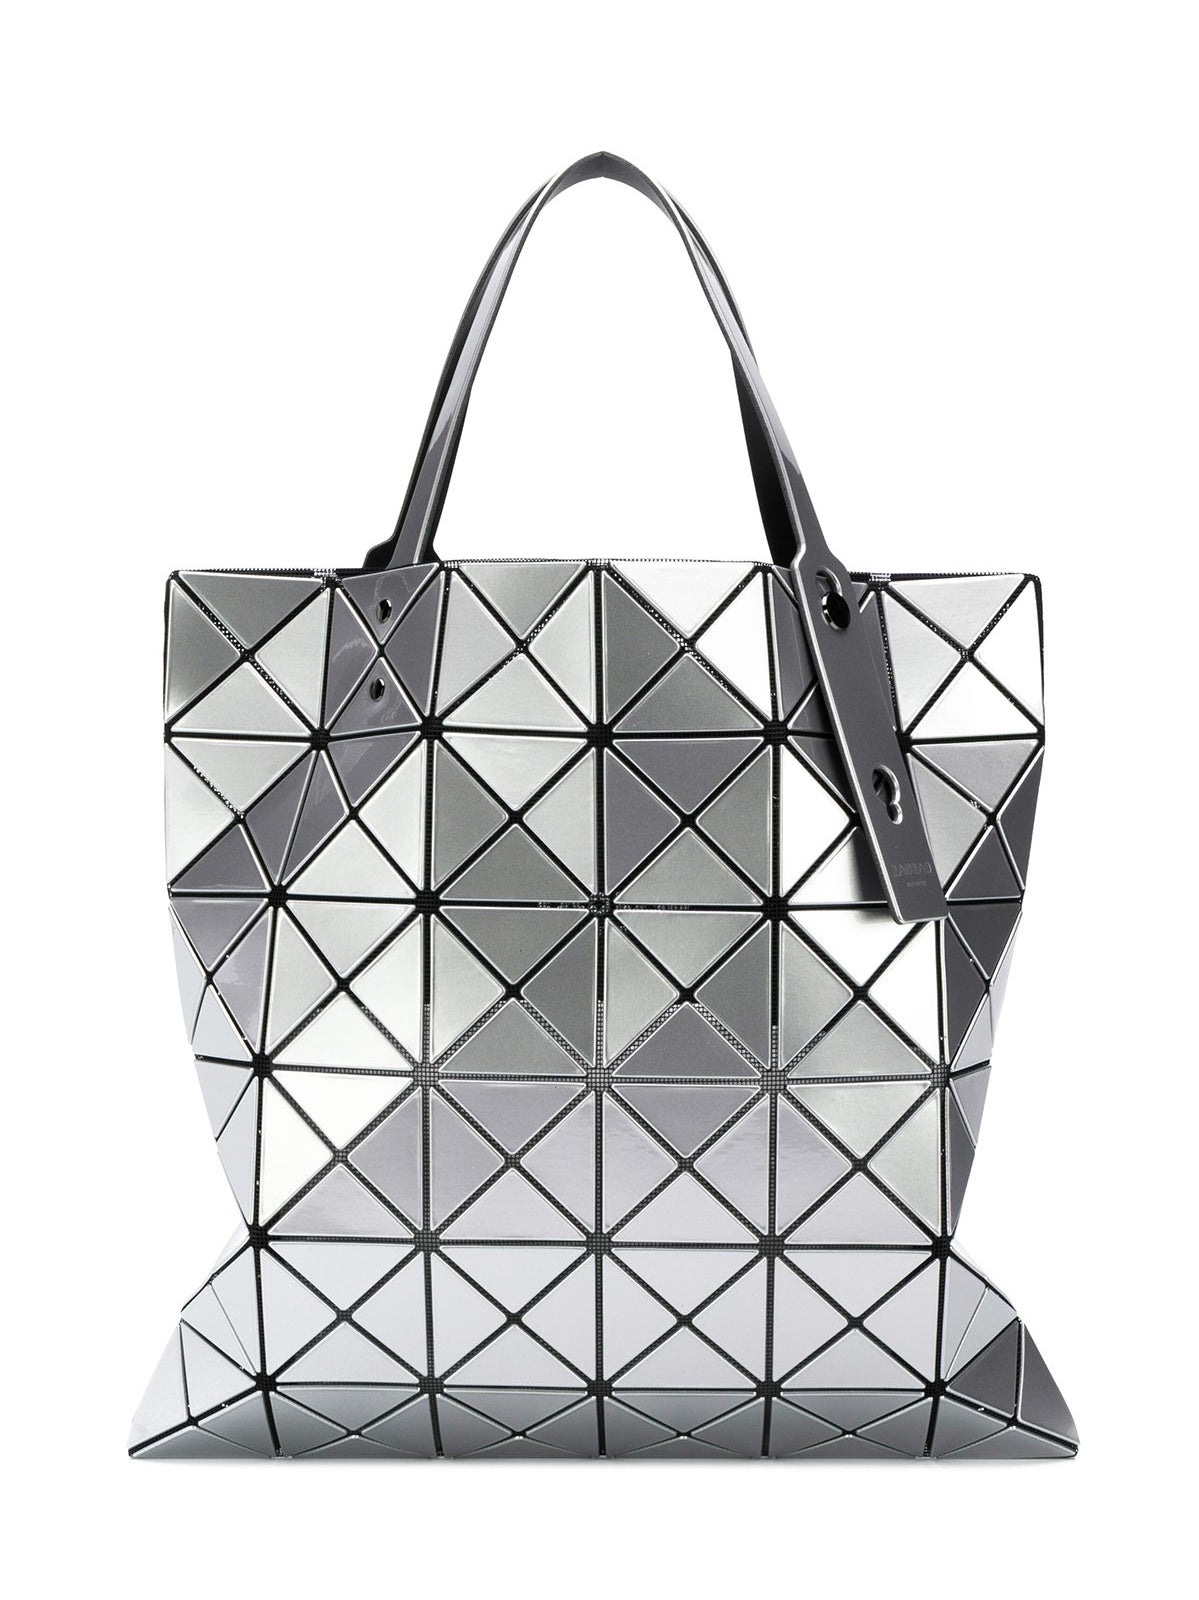 Lucent Basics Tote Bag - Silver